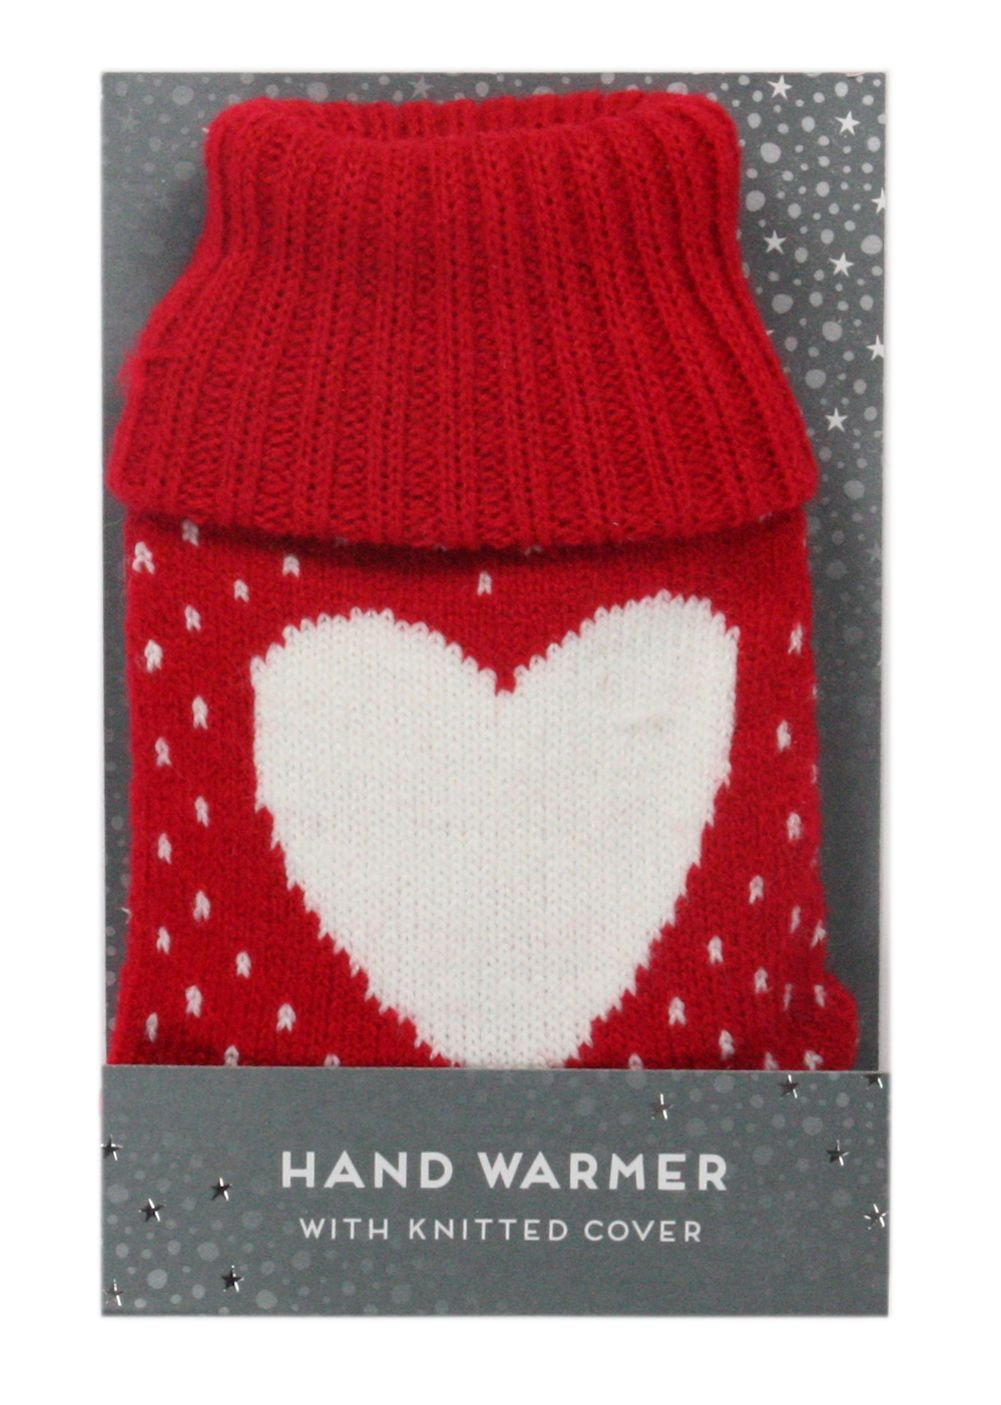 1 x Pocket Hand Warmer With Patterned Knitted Cover ITP